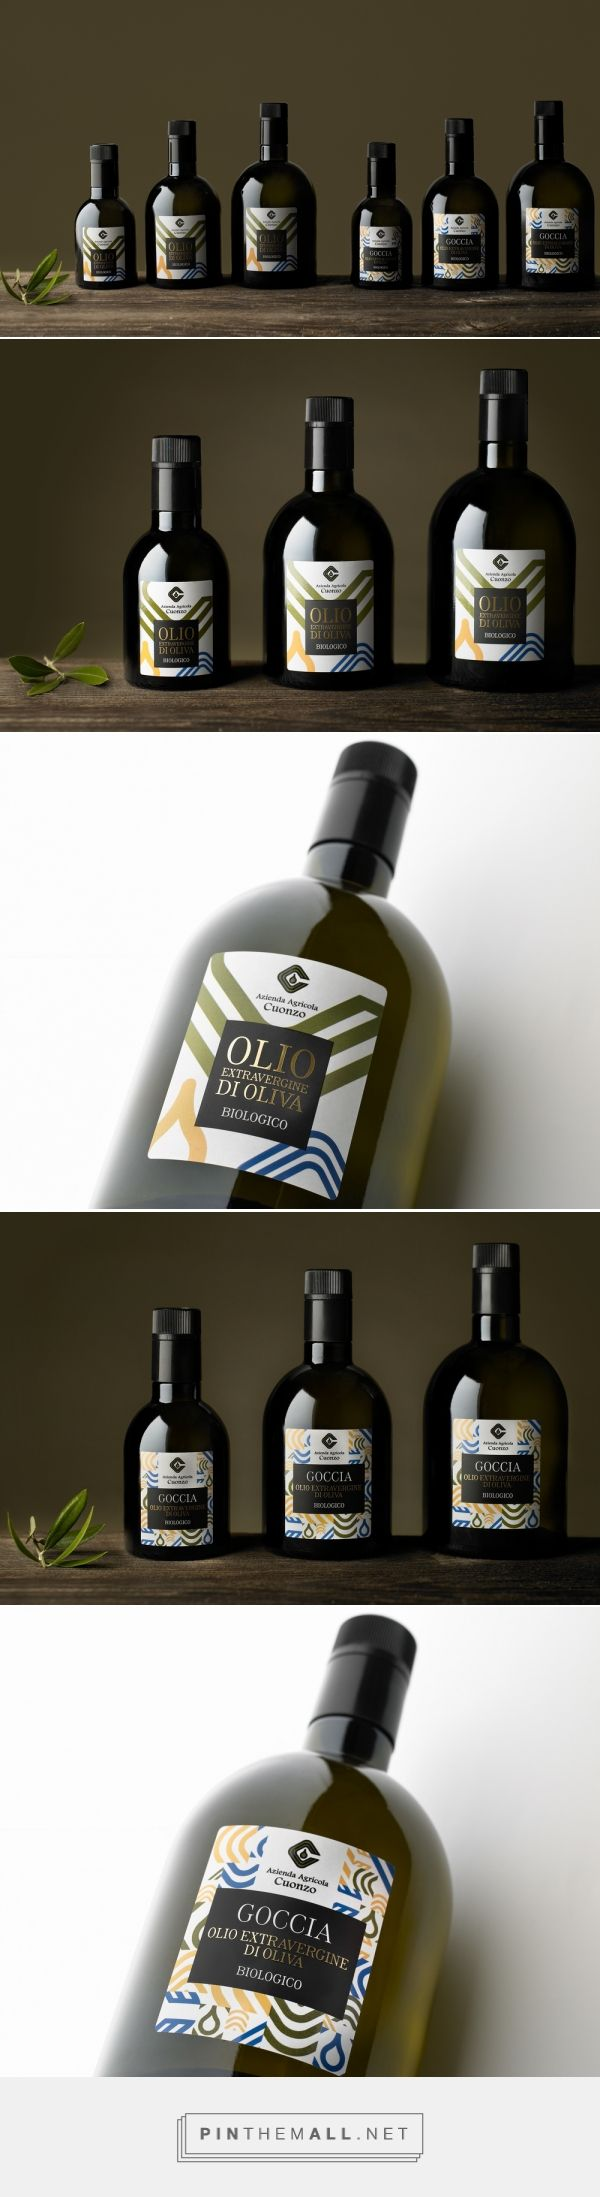 EMMECIDUE - L'Olio Biologico Cuonzo — World Packaging Design Society / 世界包裝設計社會 / Sociedad Mundial de Diseño de Empaques... - a grouped images picture - Pin Them All